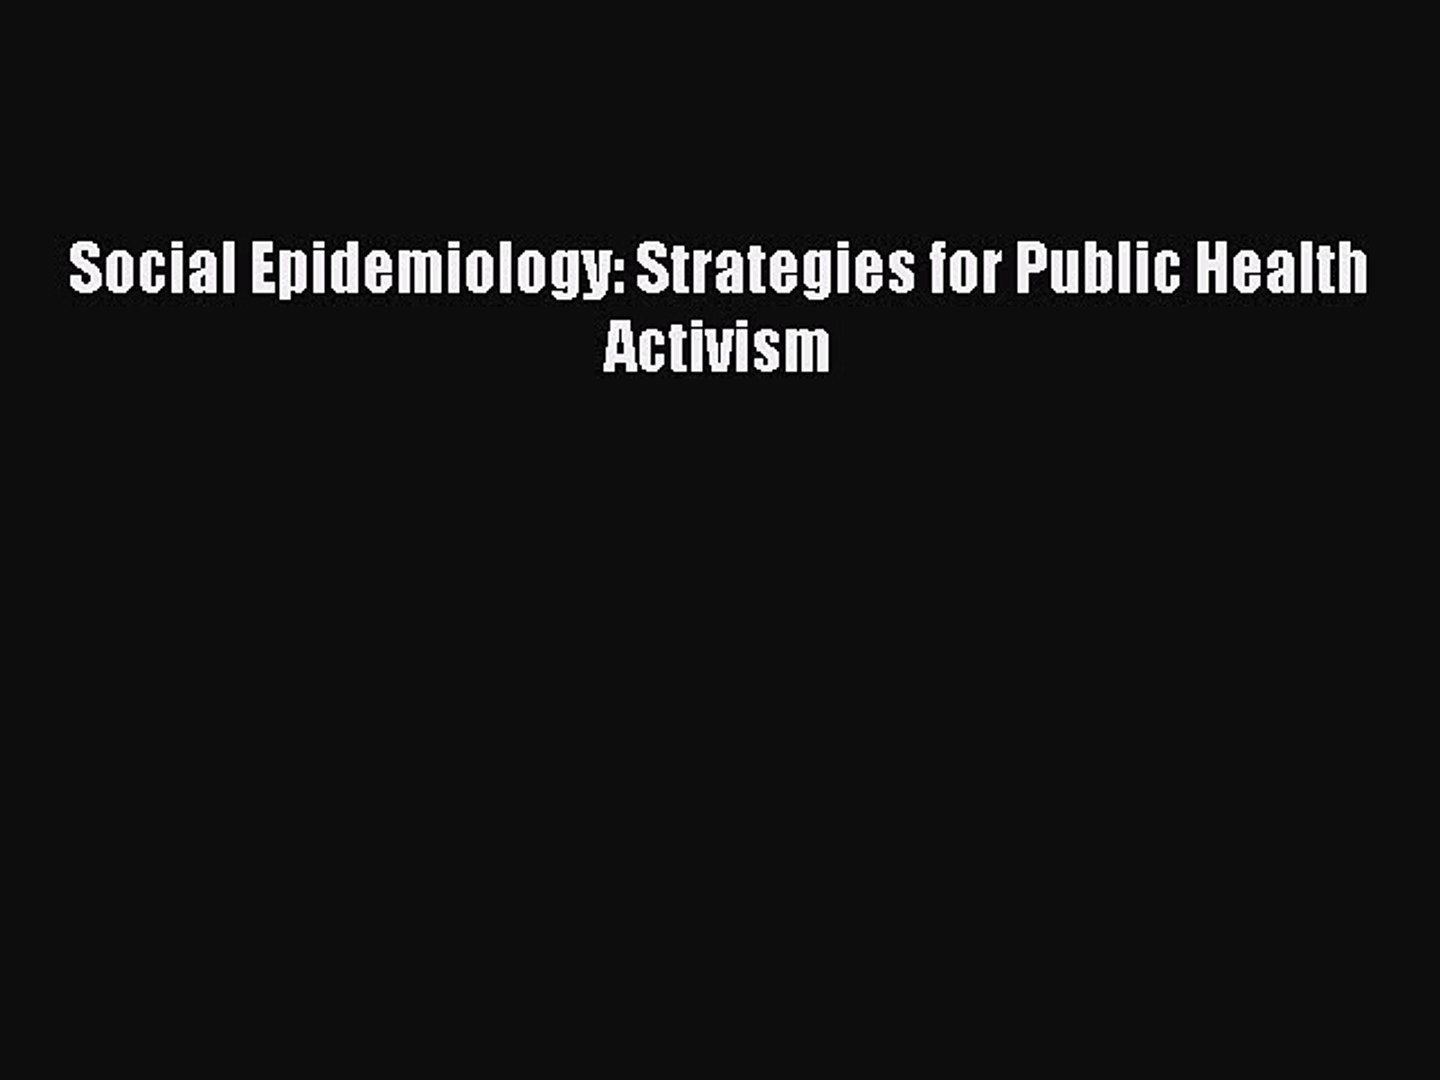 Social Epidemiology: Strategies for Public Health Activism  Free Books